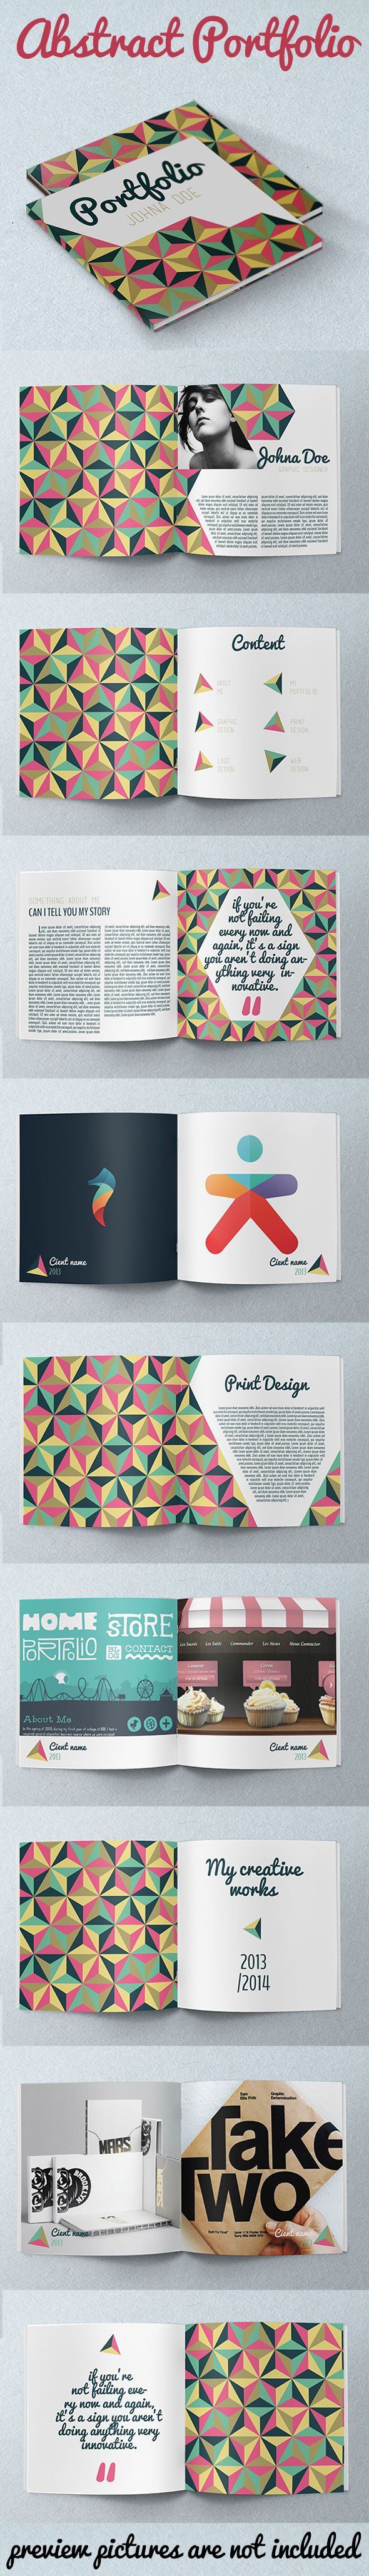 Abstract Portfolio Brochure by crew55design , via Behance